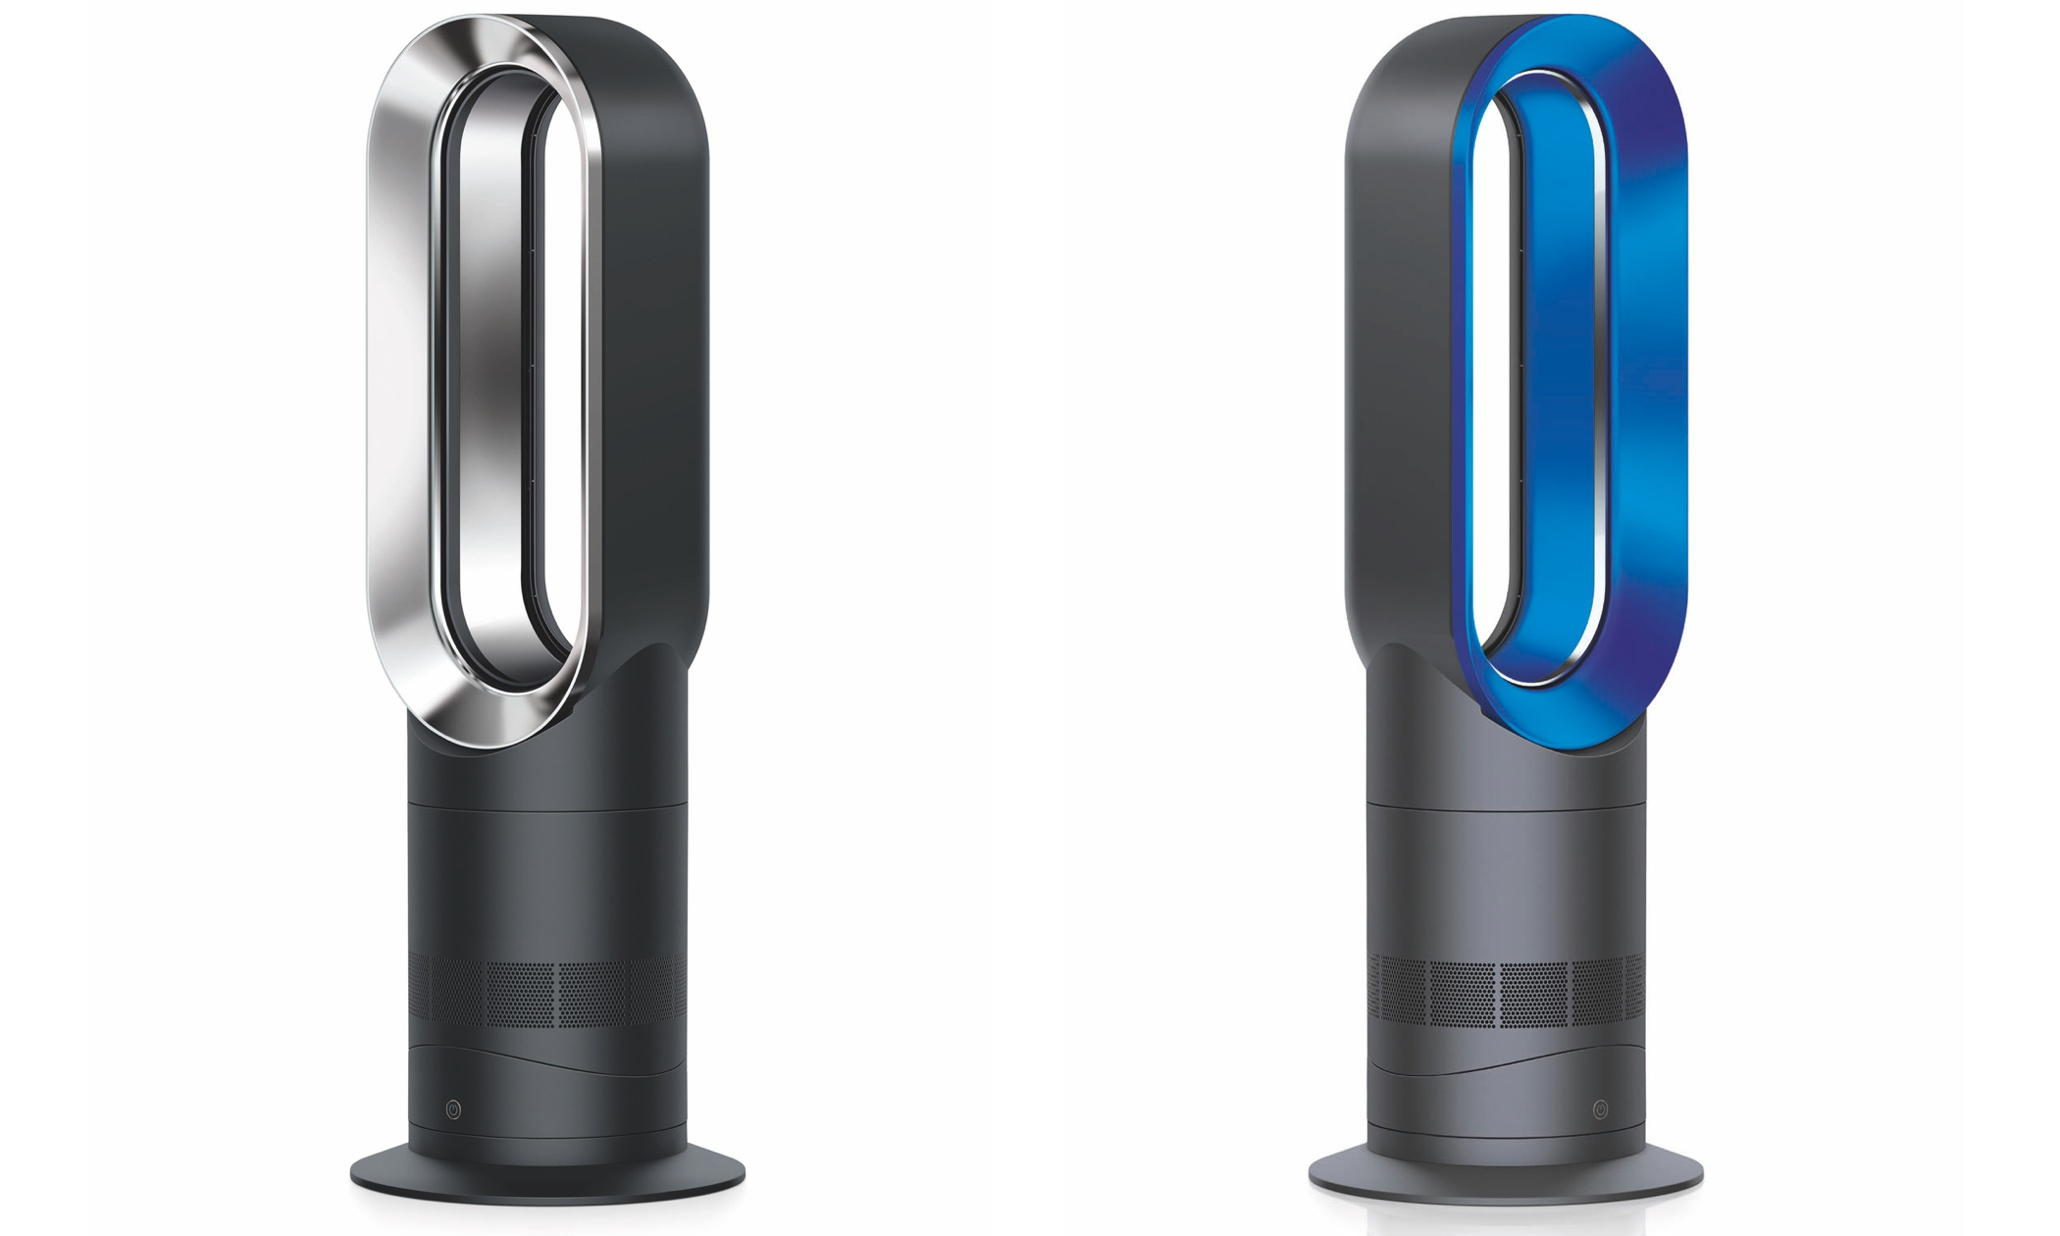 dyson hot cool am09 review the world 39 s best heater fan. Black Bedroom Furniture Sets. Home Design Ideas